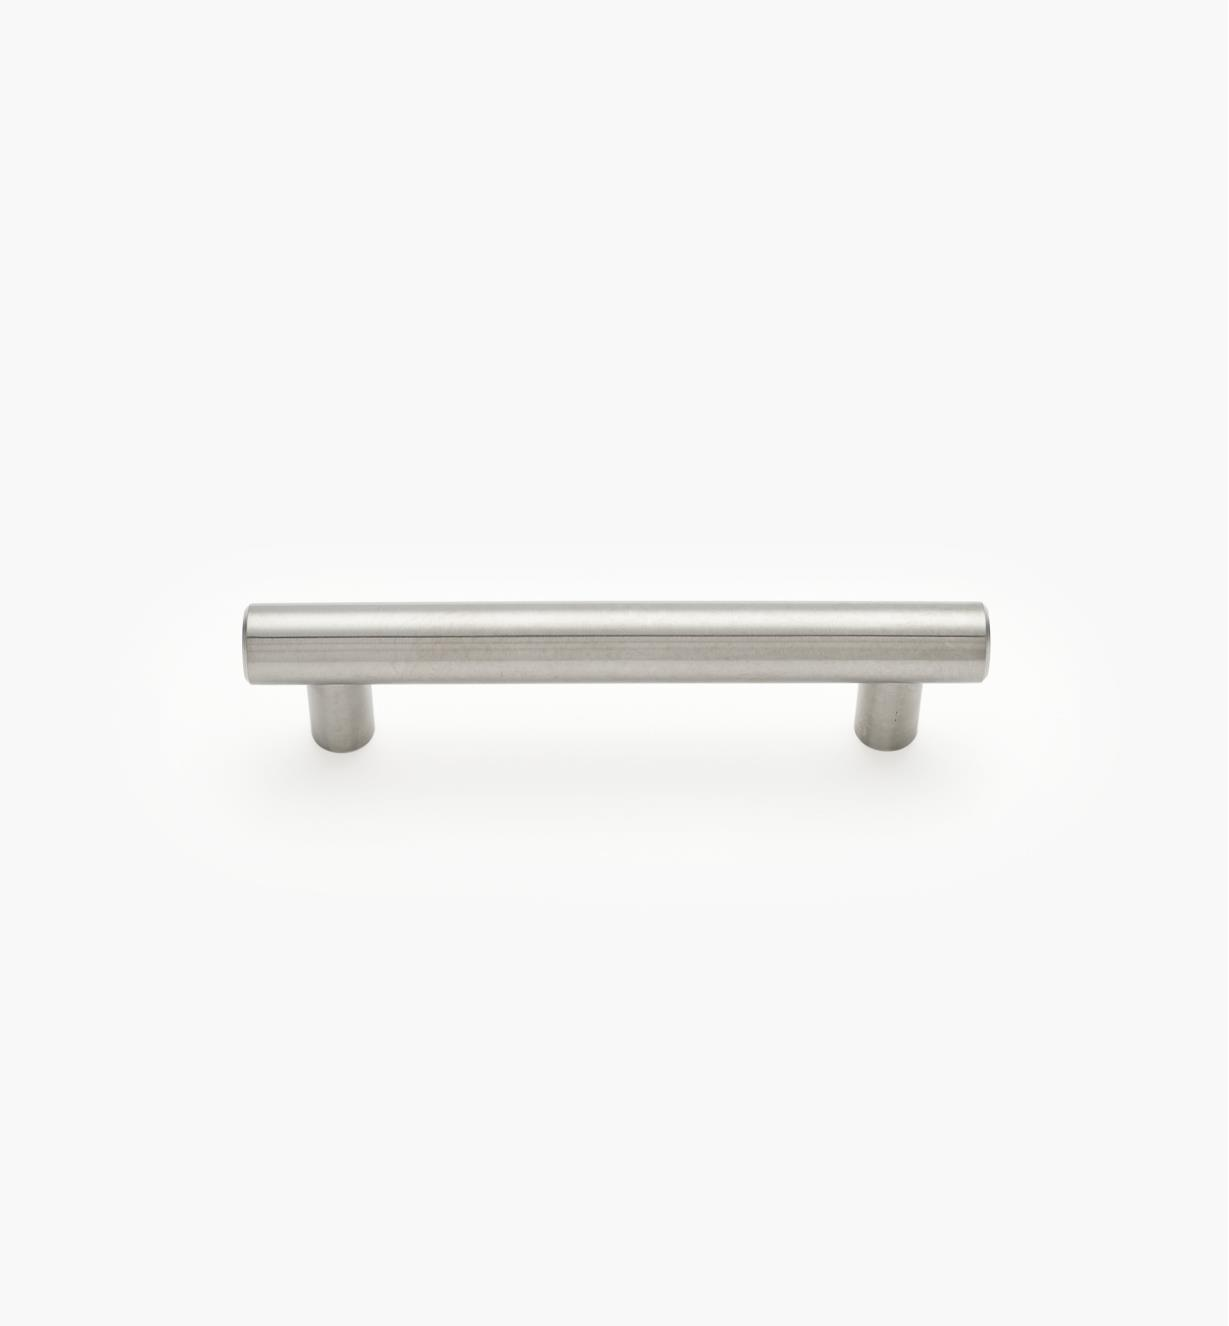 01W8356 - 168mm (128mm) Stainless Steel Bar Handle